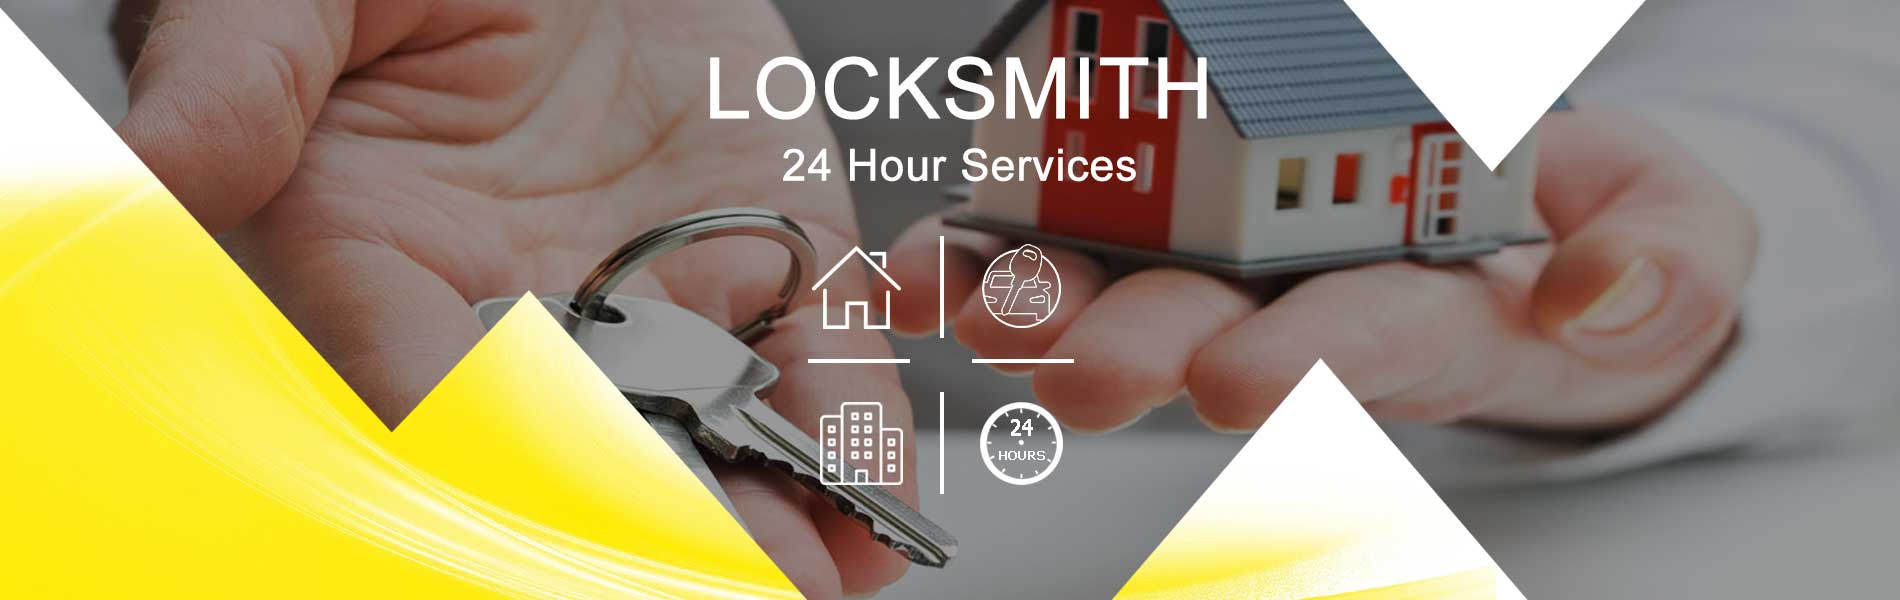 Arlington Locksmith Solution, Arlington, TX 972-810-6767